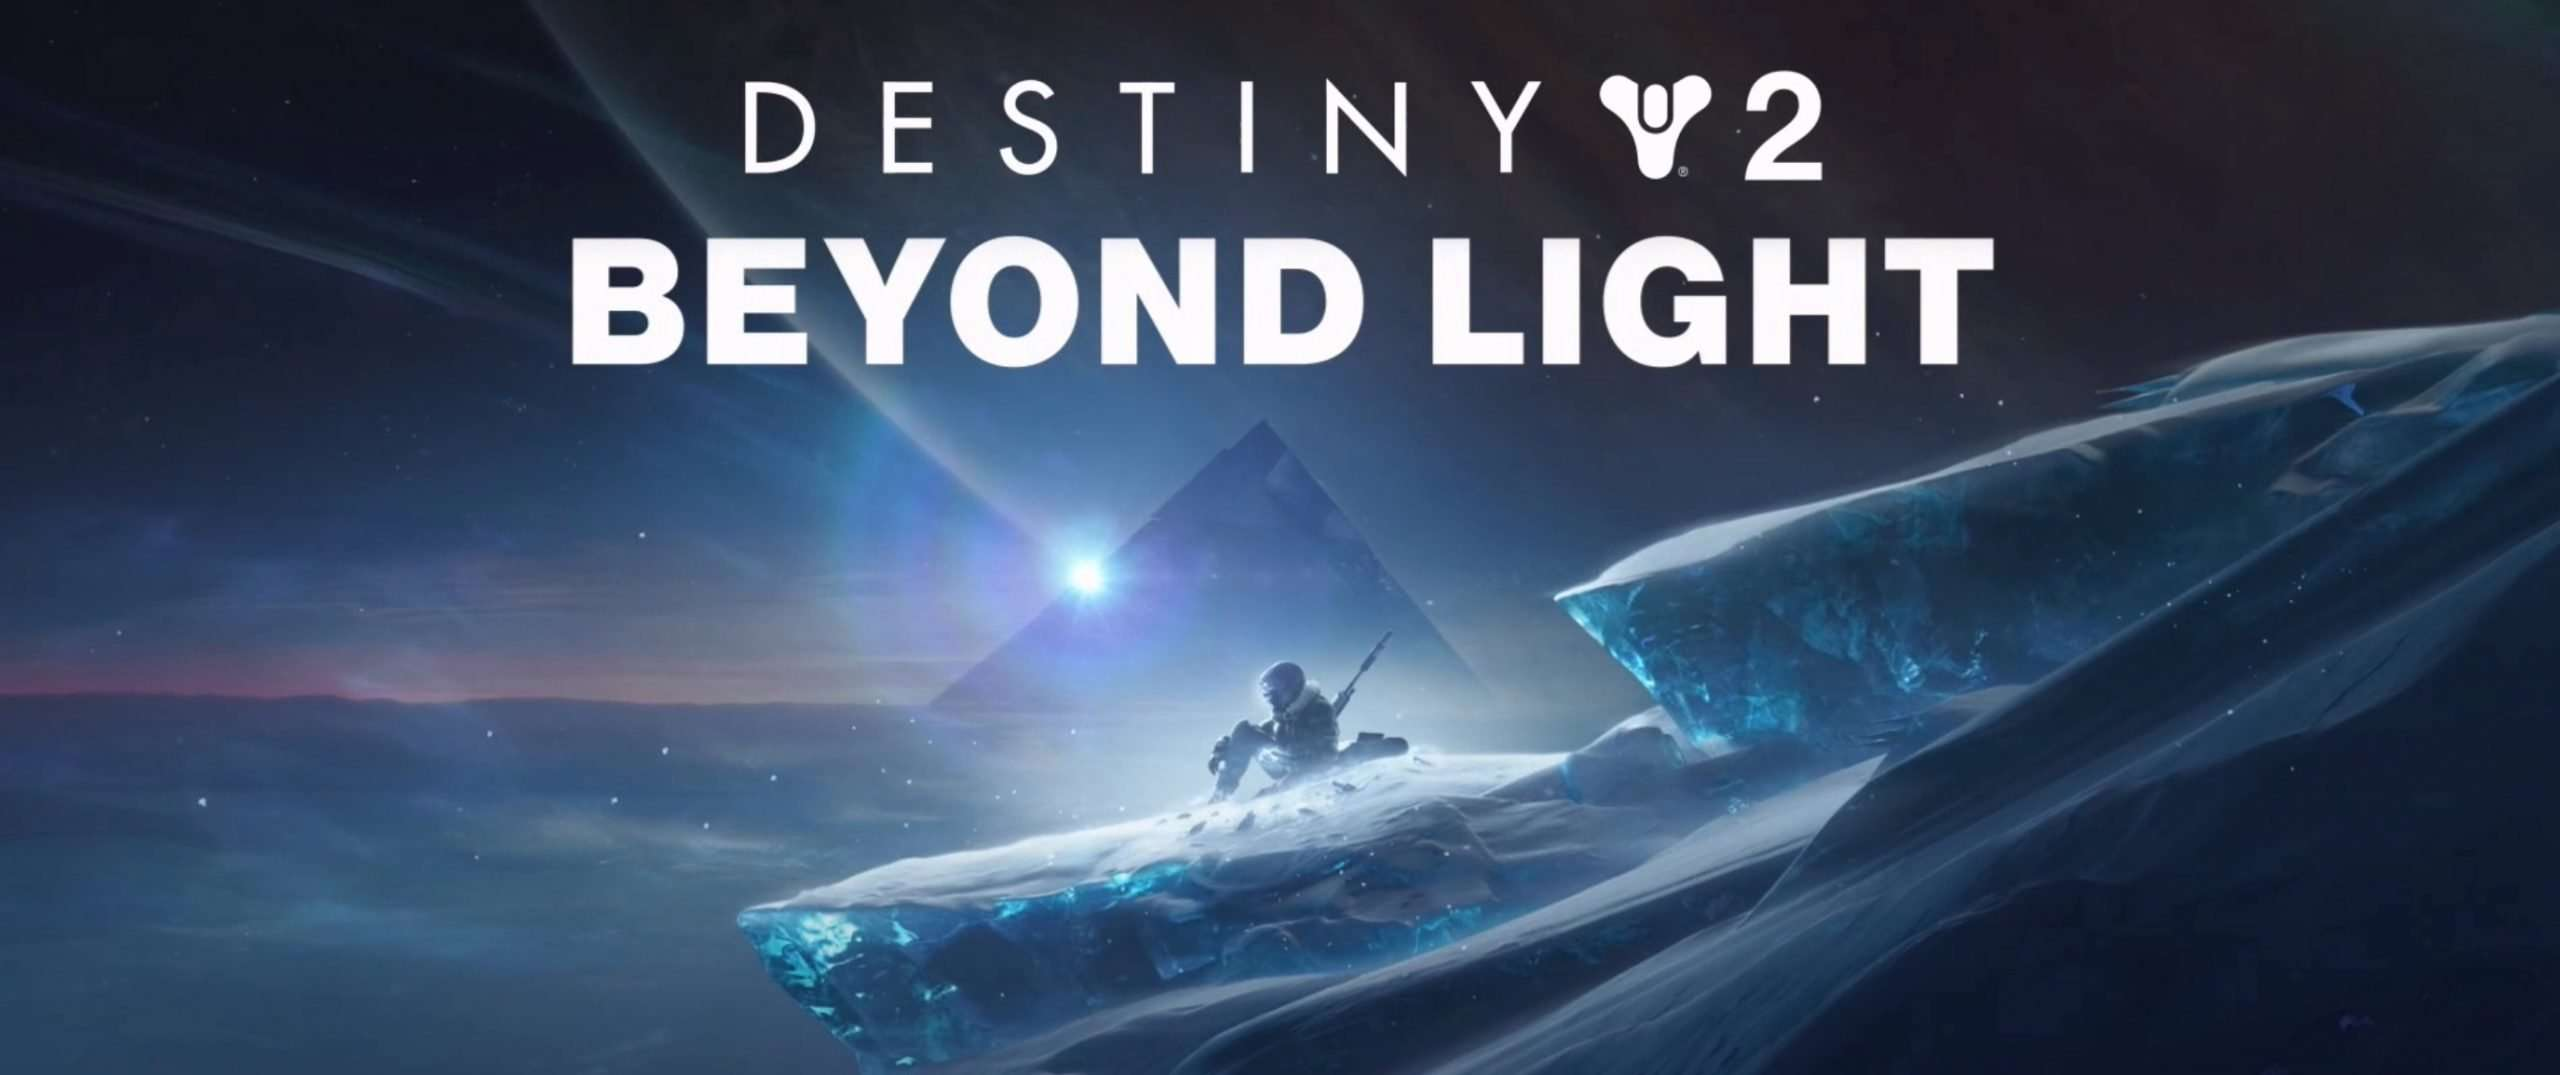 Destiny 2 Beyond Light Supposedly Has The Best Loot Systems Viewed Since The Menagerie!!!